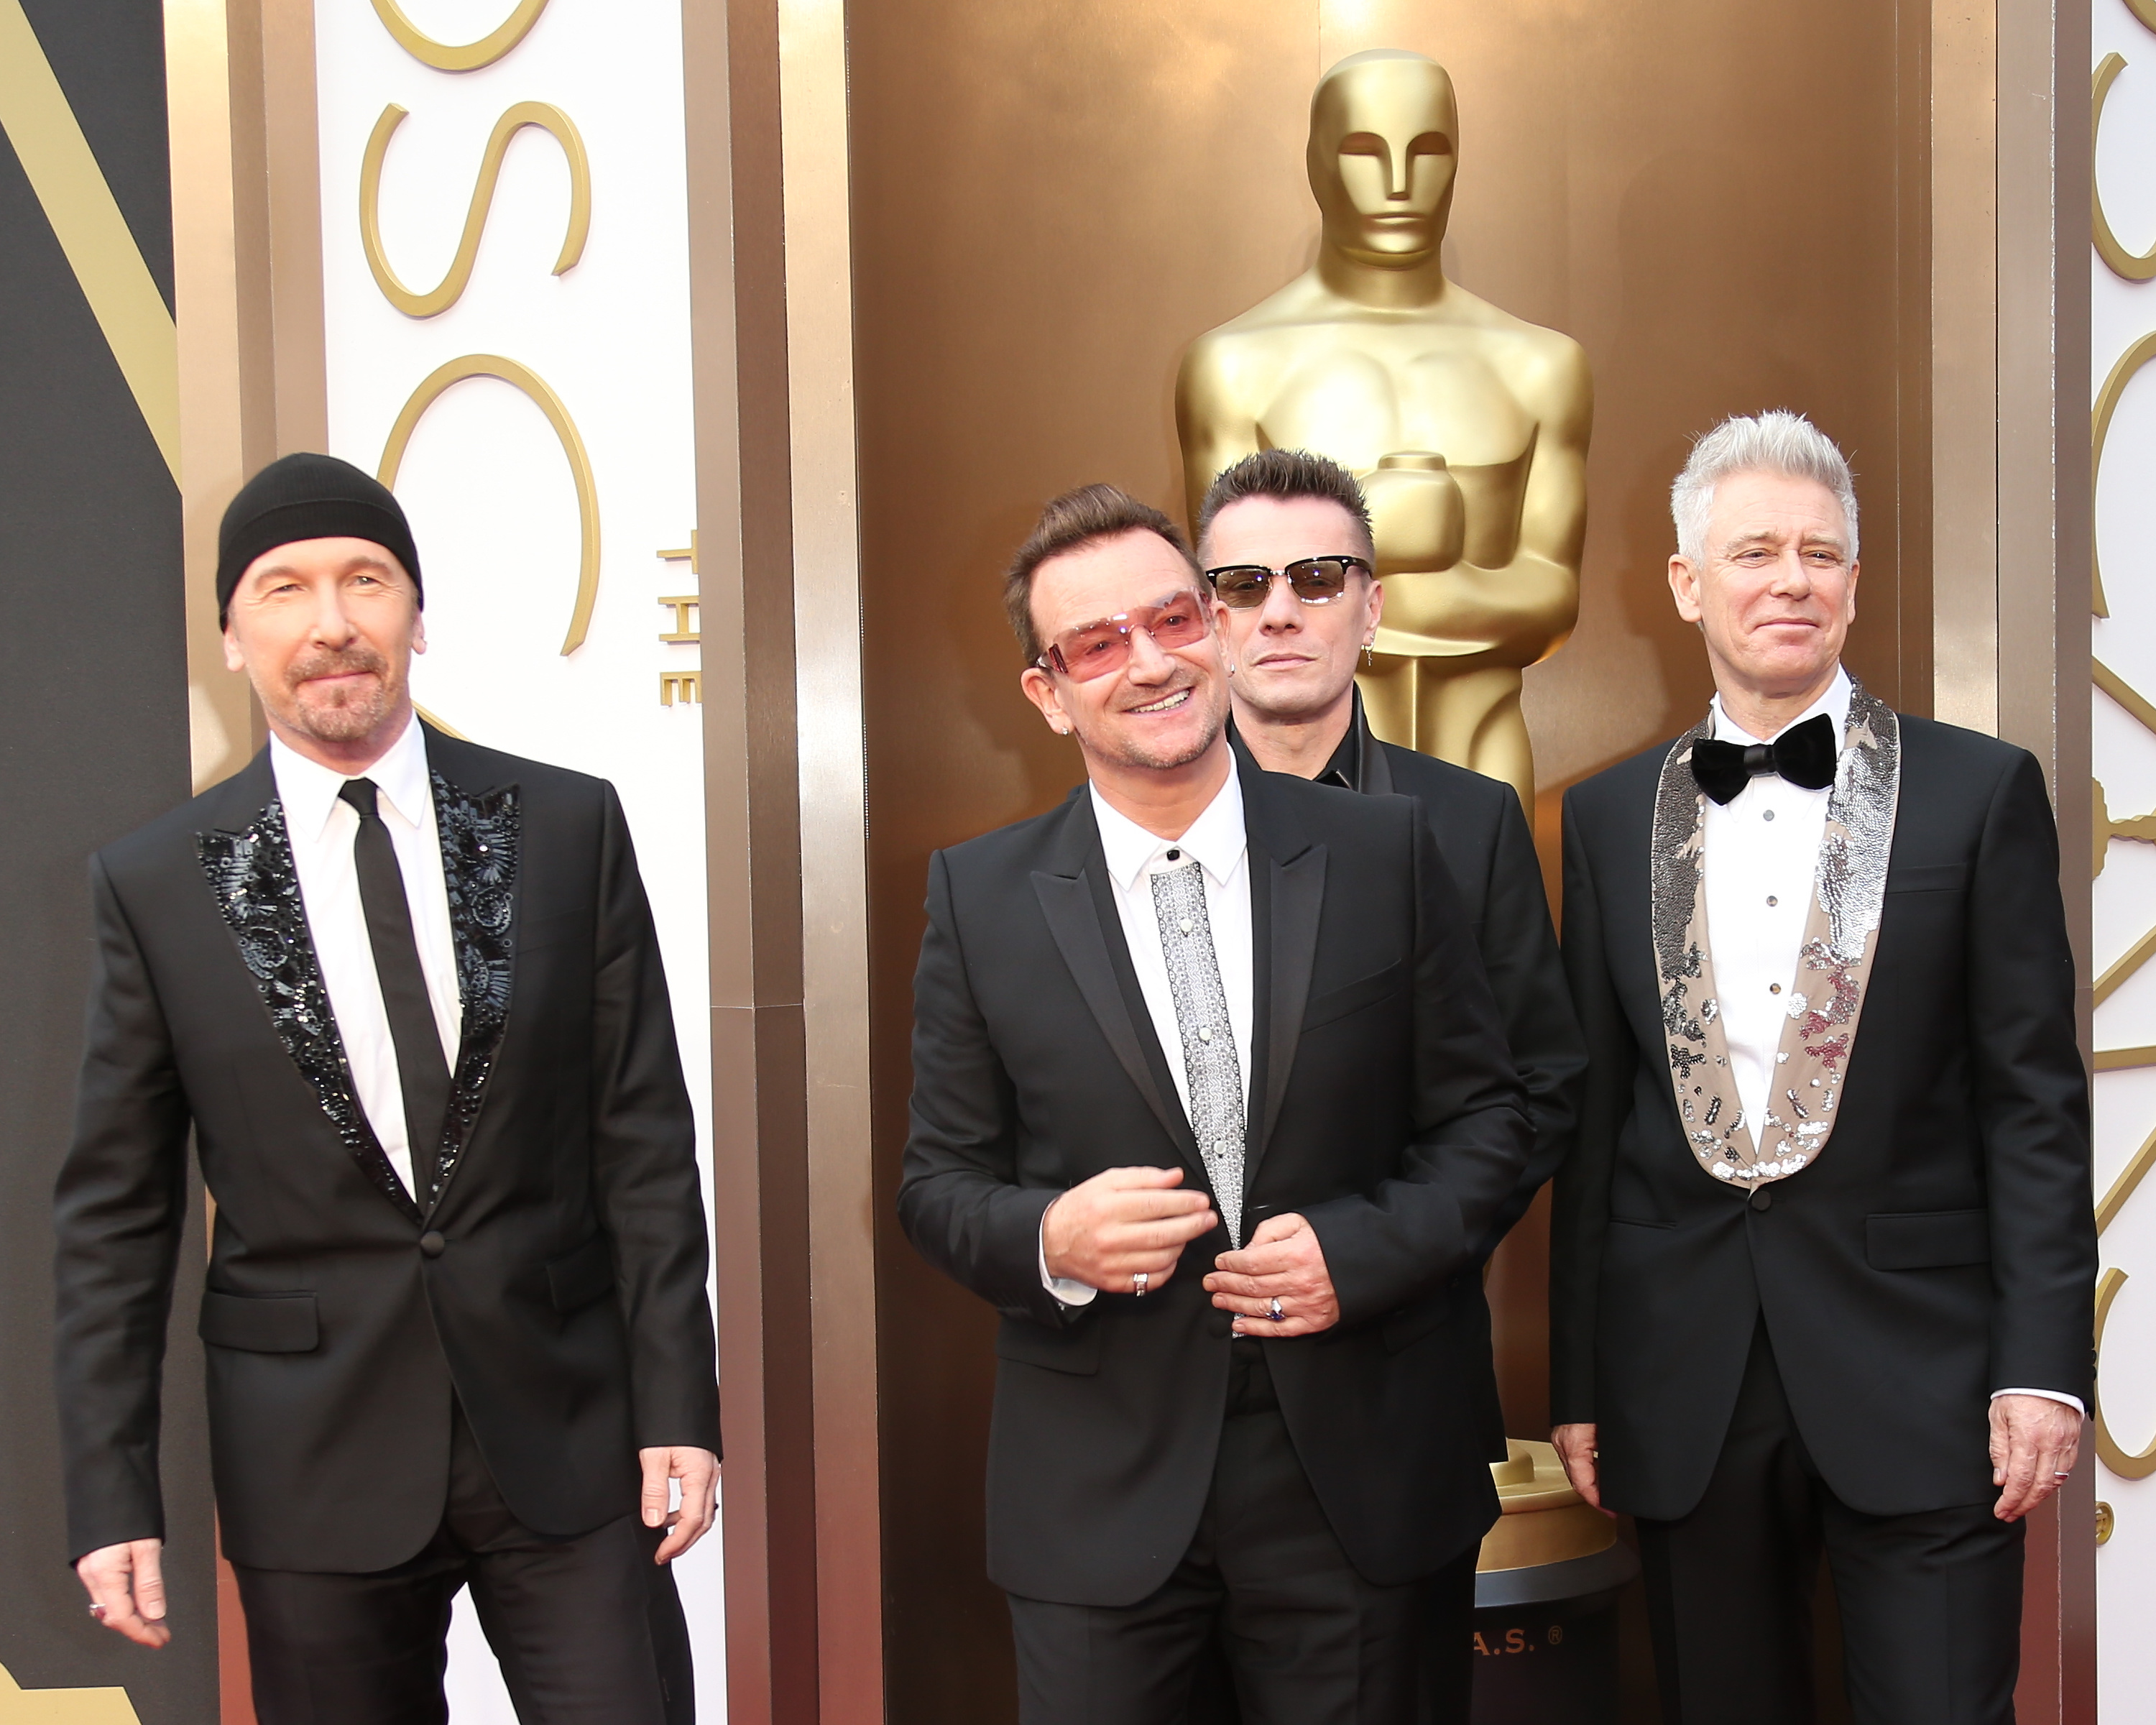 HOLLYWOOD, CA - MARCH 2: (L-R) The Edge, Bono, Larry Mullen, Jr. and Adam Clayton of 'U2' arrive at the 86th Annual Academy A